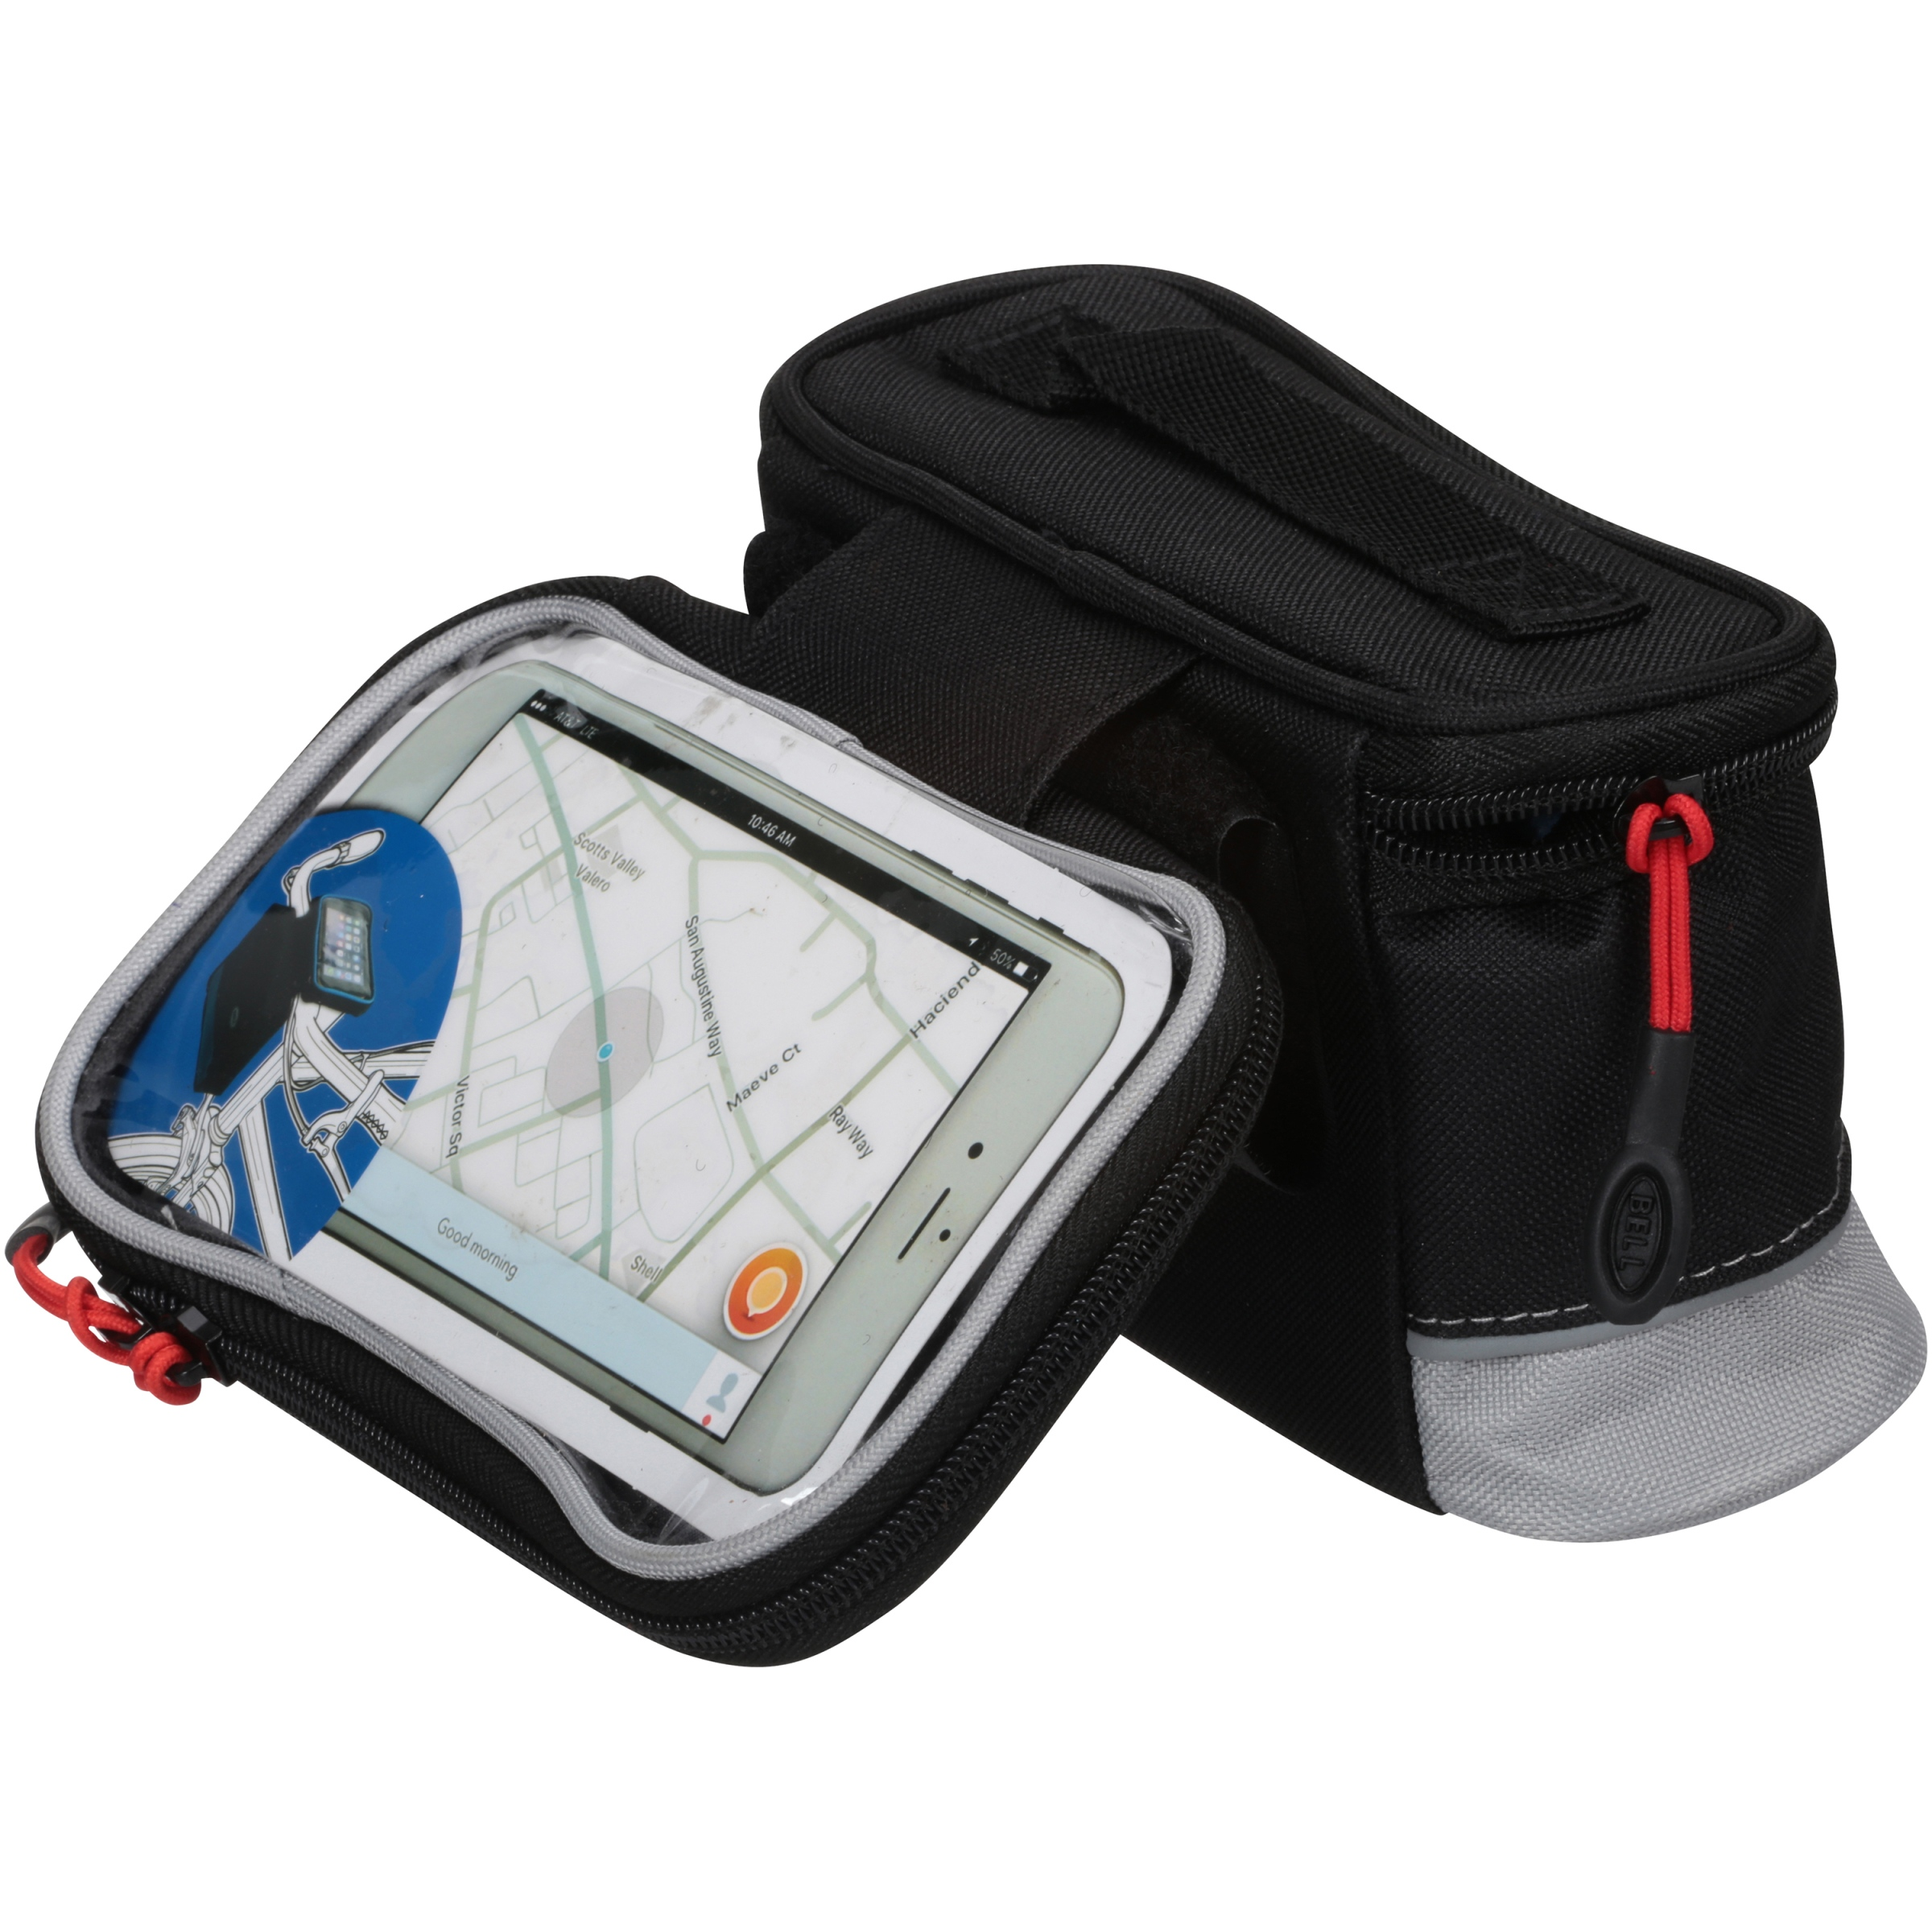 Bell® Stowaway™ 700 Phone Bicycle Handlebar Bag